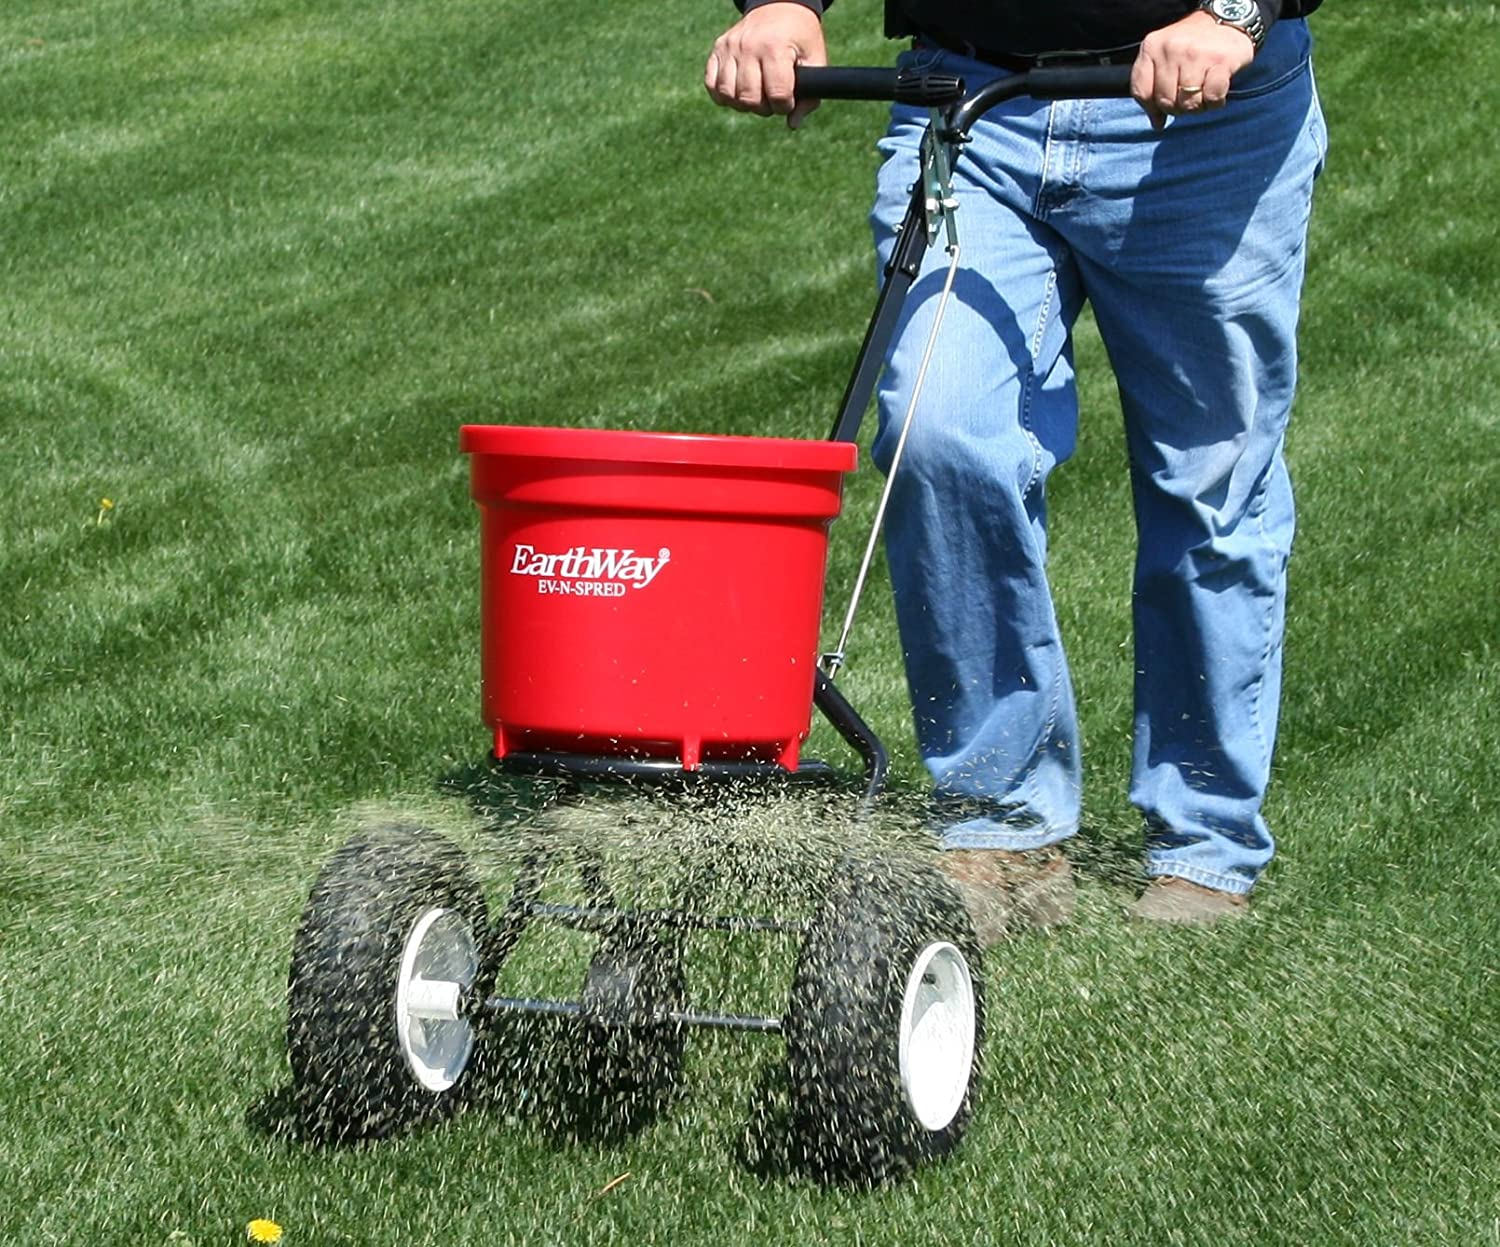 Broadcast Spreader Turf : Best lawn fertilizer spreader reviews  buyer s